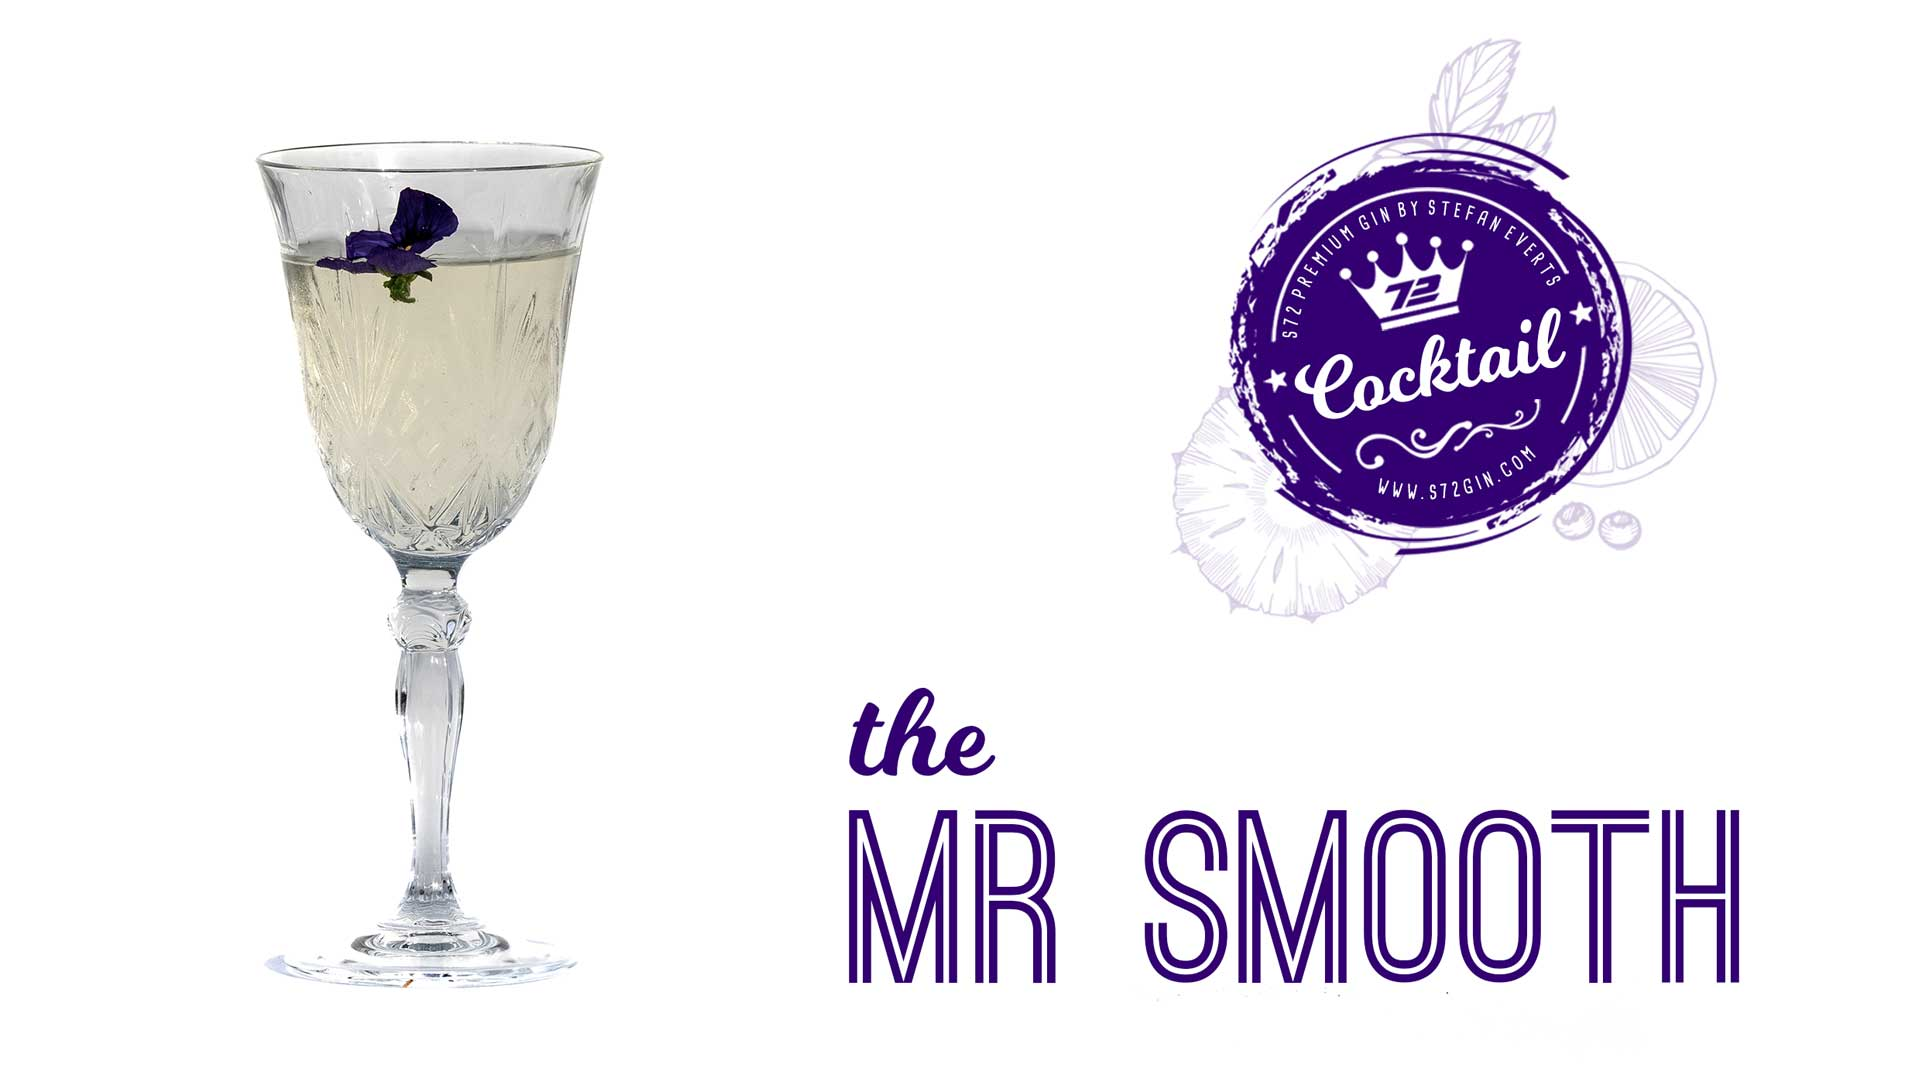 https://www.s72gin.com/wp-content/uploads/2020/08/S72-MR-SMOOTH-1.jpg